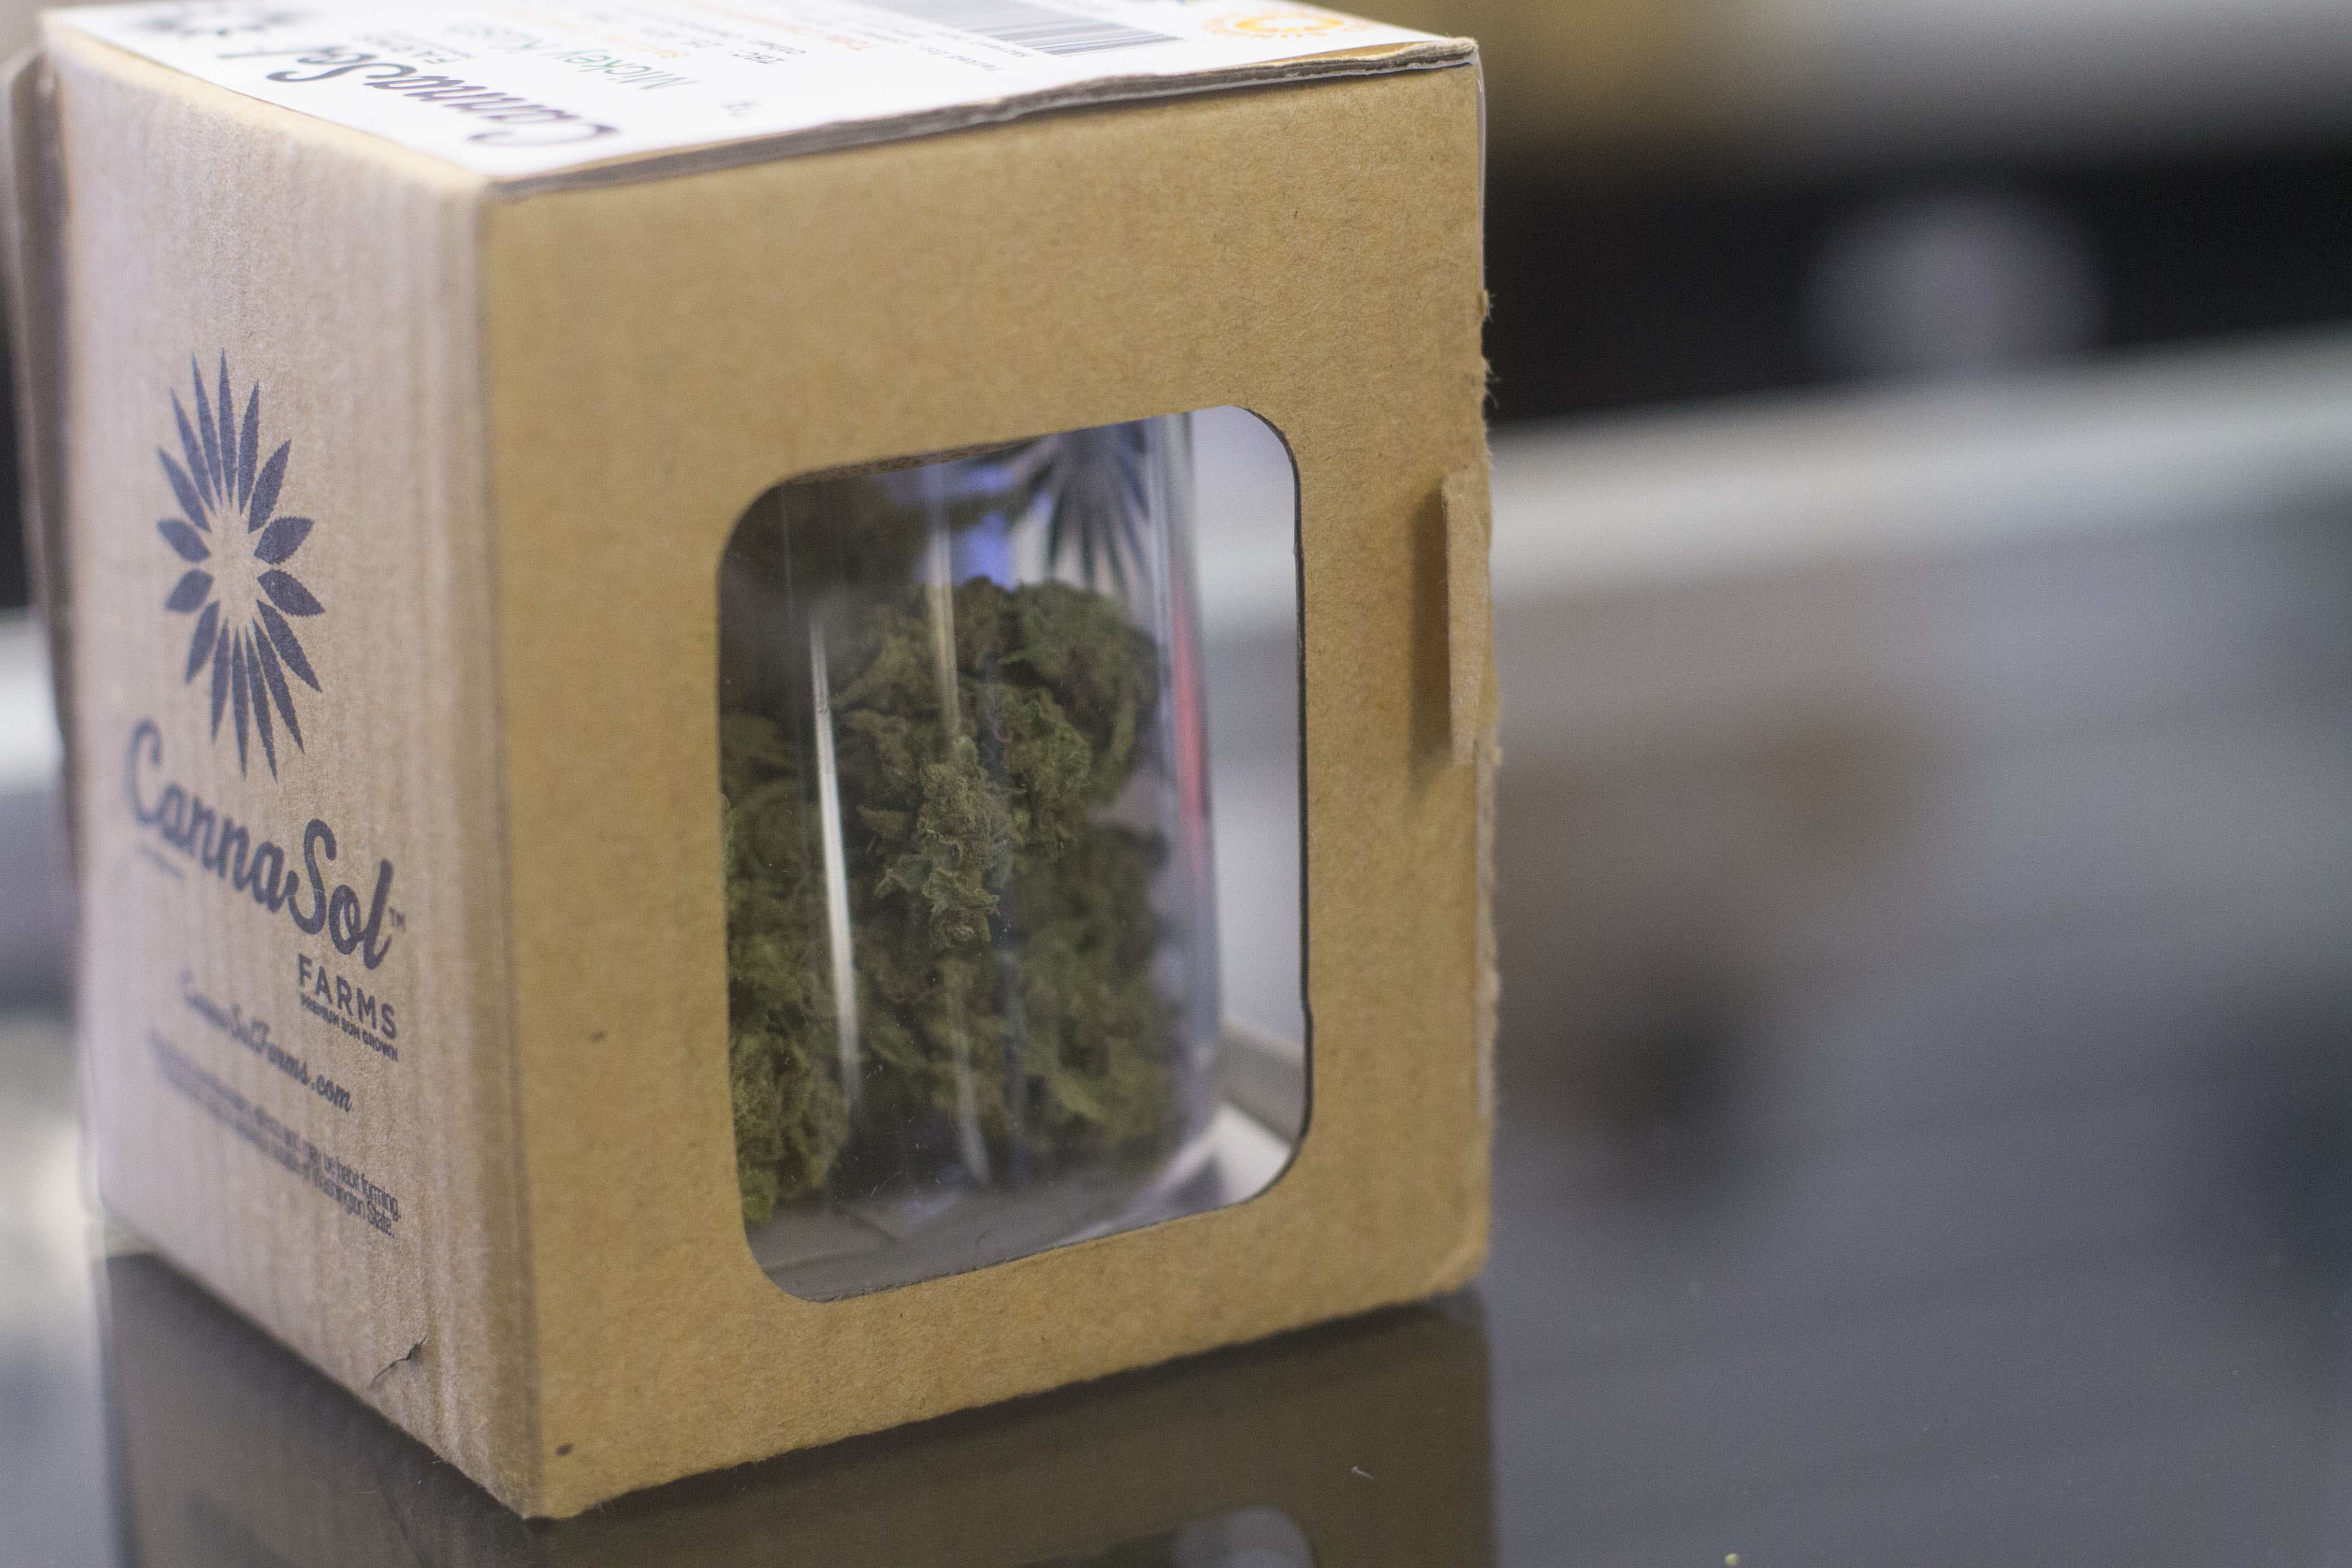 Oregon is the fourth state to enact a law to prevent weed dispensaries from storing the personal information of customers.